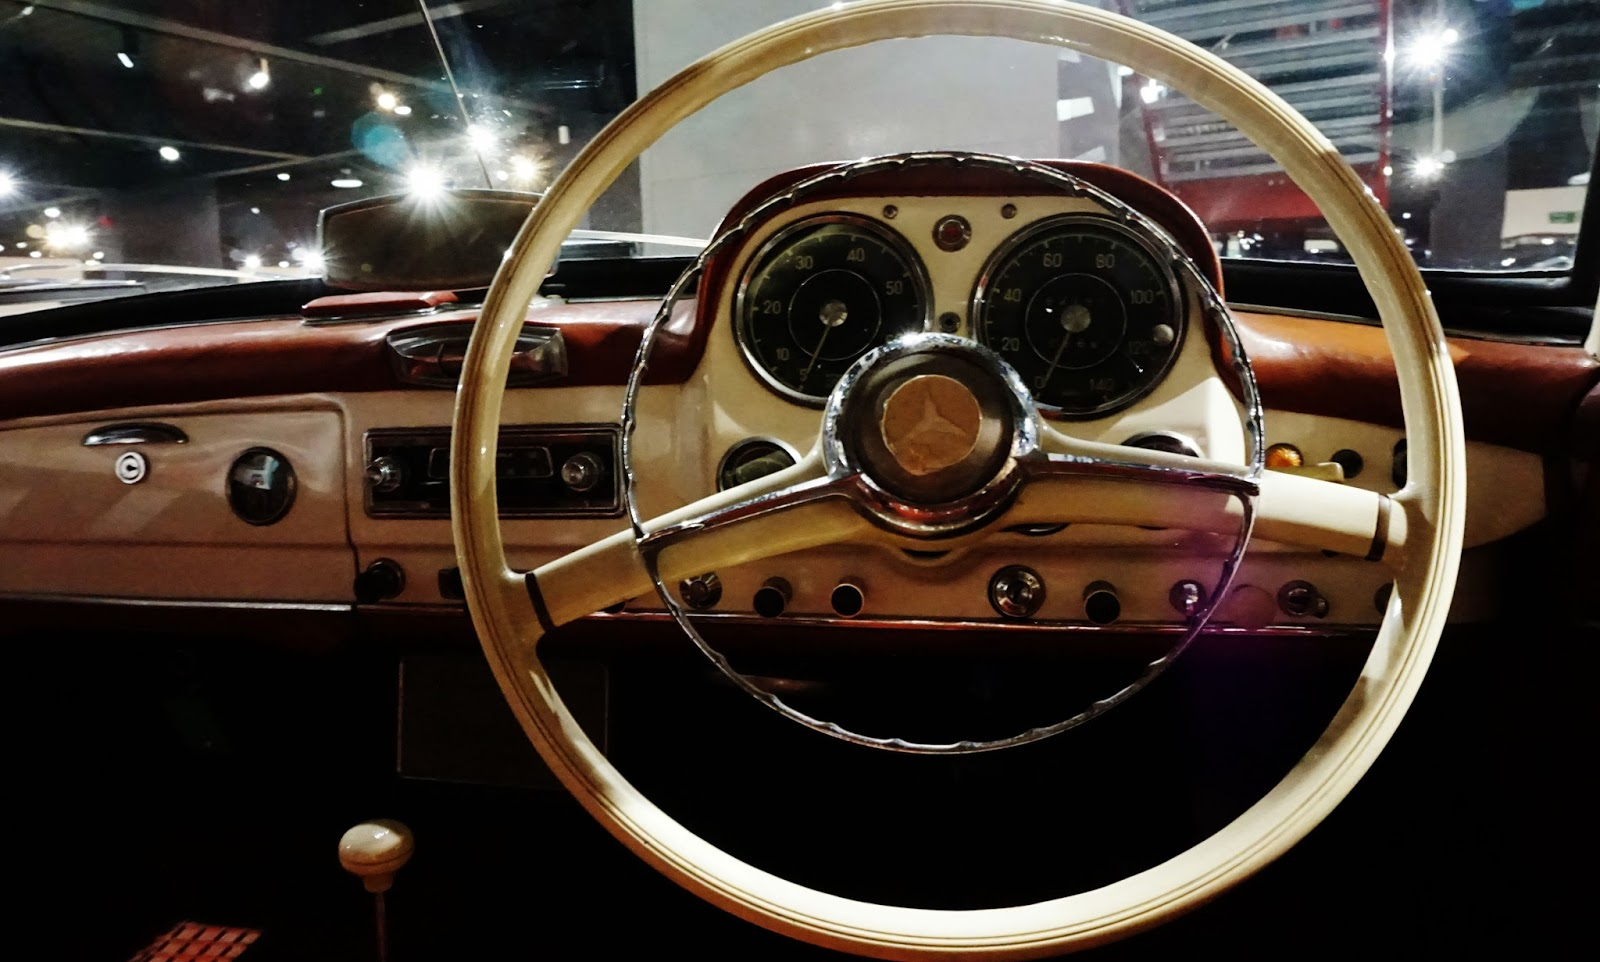 classic car super car model steering wheel interiors haynes motor museum